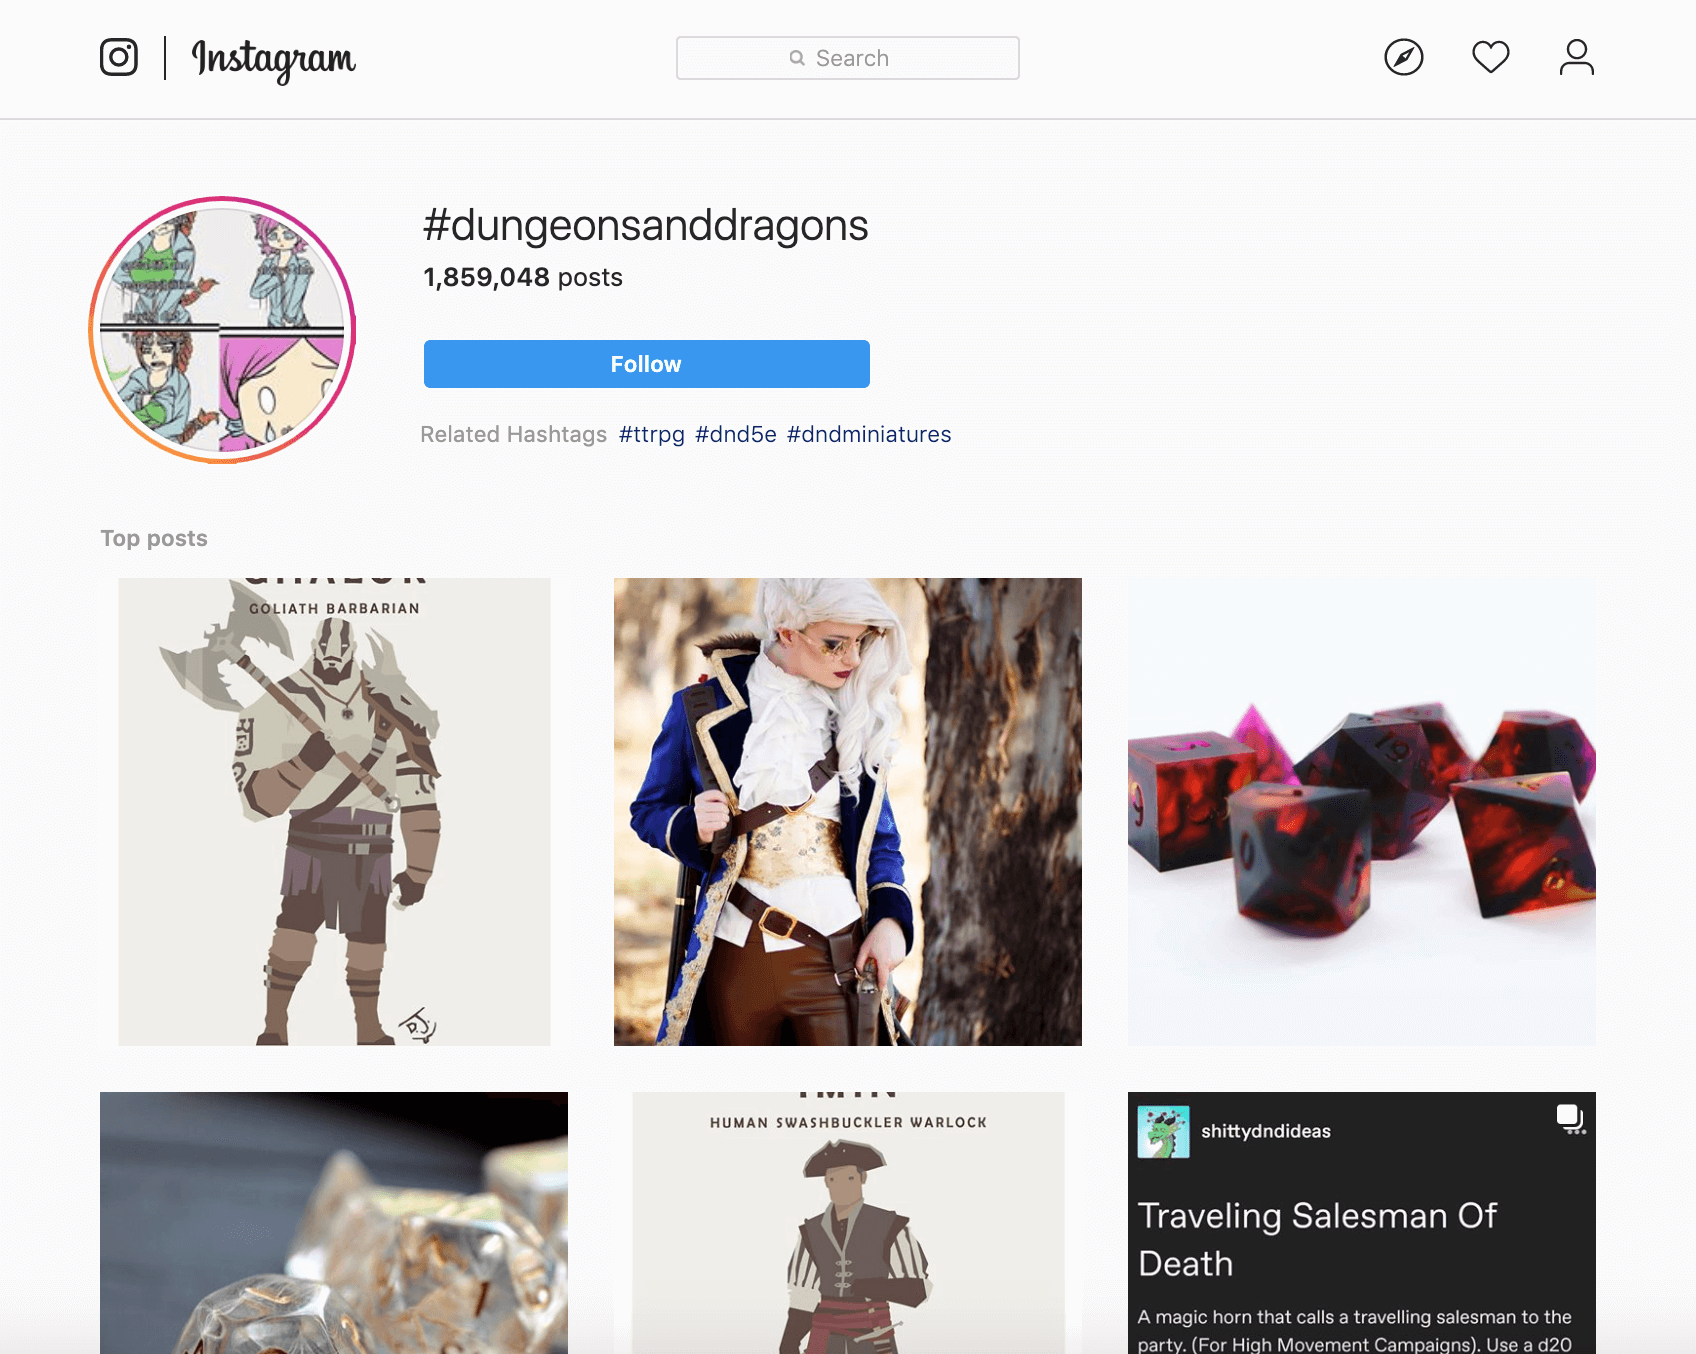 Amazon Product Niches: page de résultats de recherche Instagram pour Dungeons and Dragons